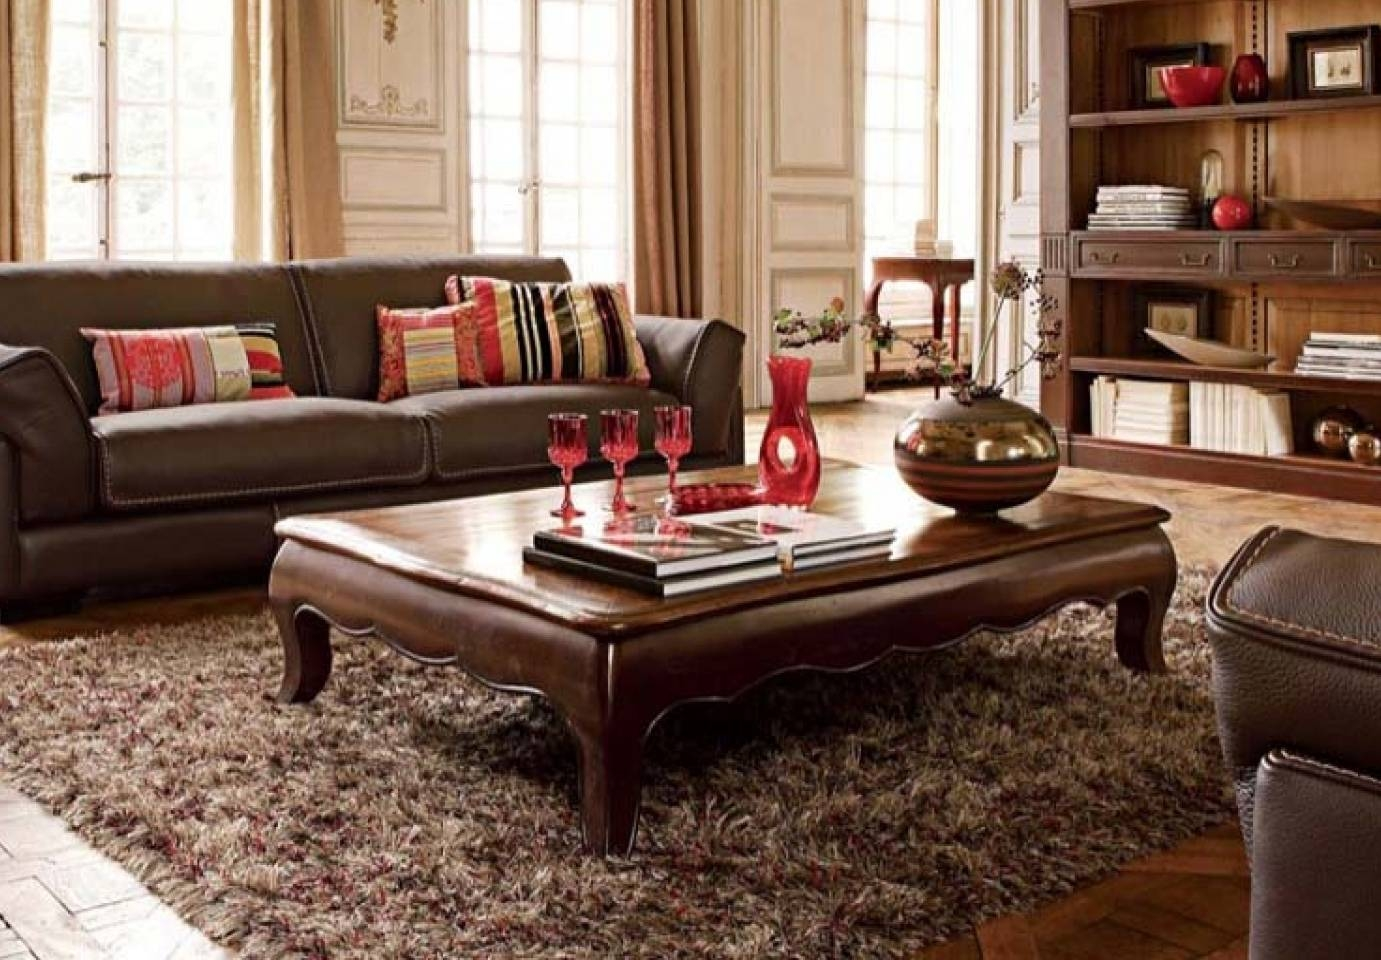 Coffee Table. Stylish Extra Large Coffee Table Designs: Incredible intended for Extra Large Coffee Tables (Image 4 of 15)